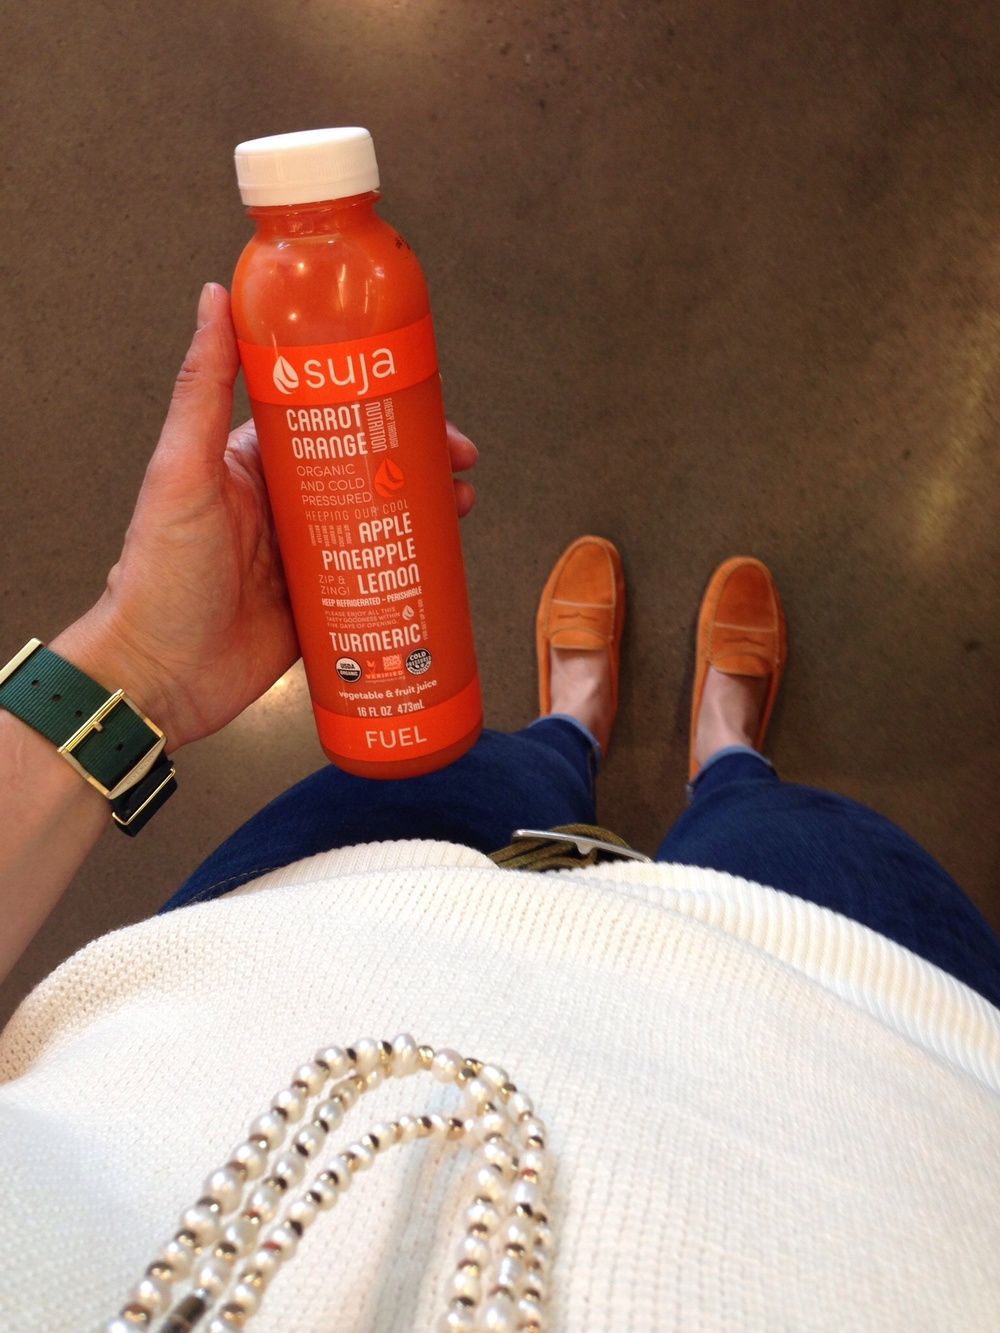 Suja Carrot Juice